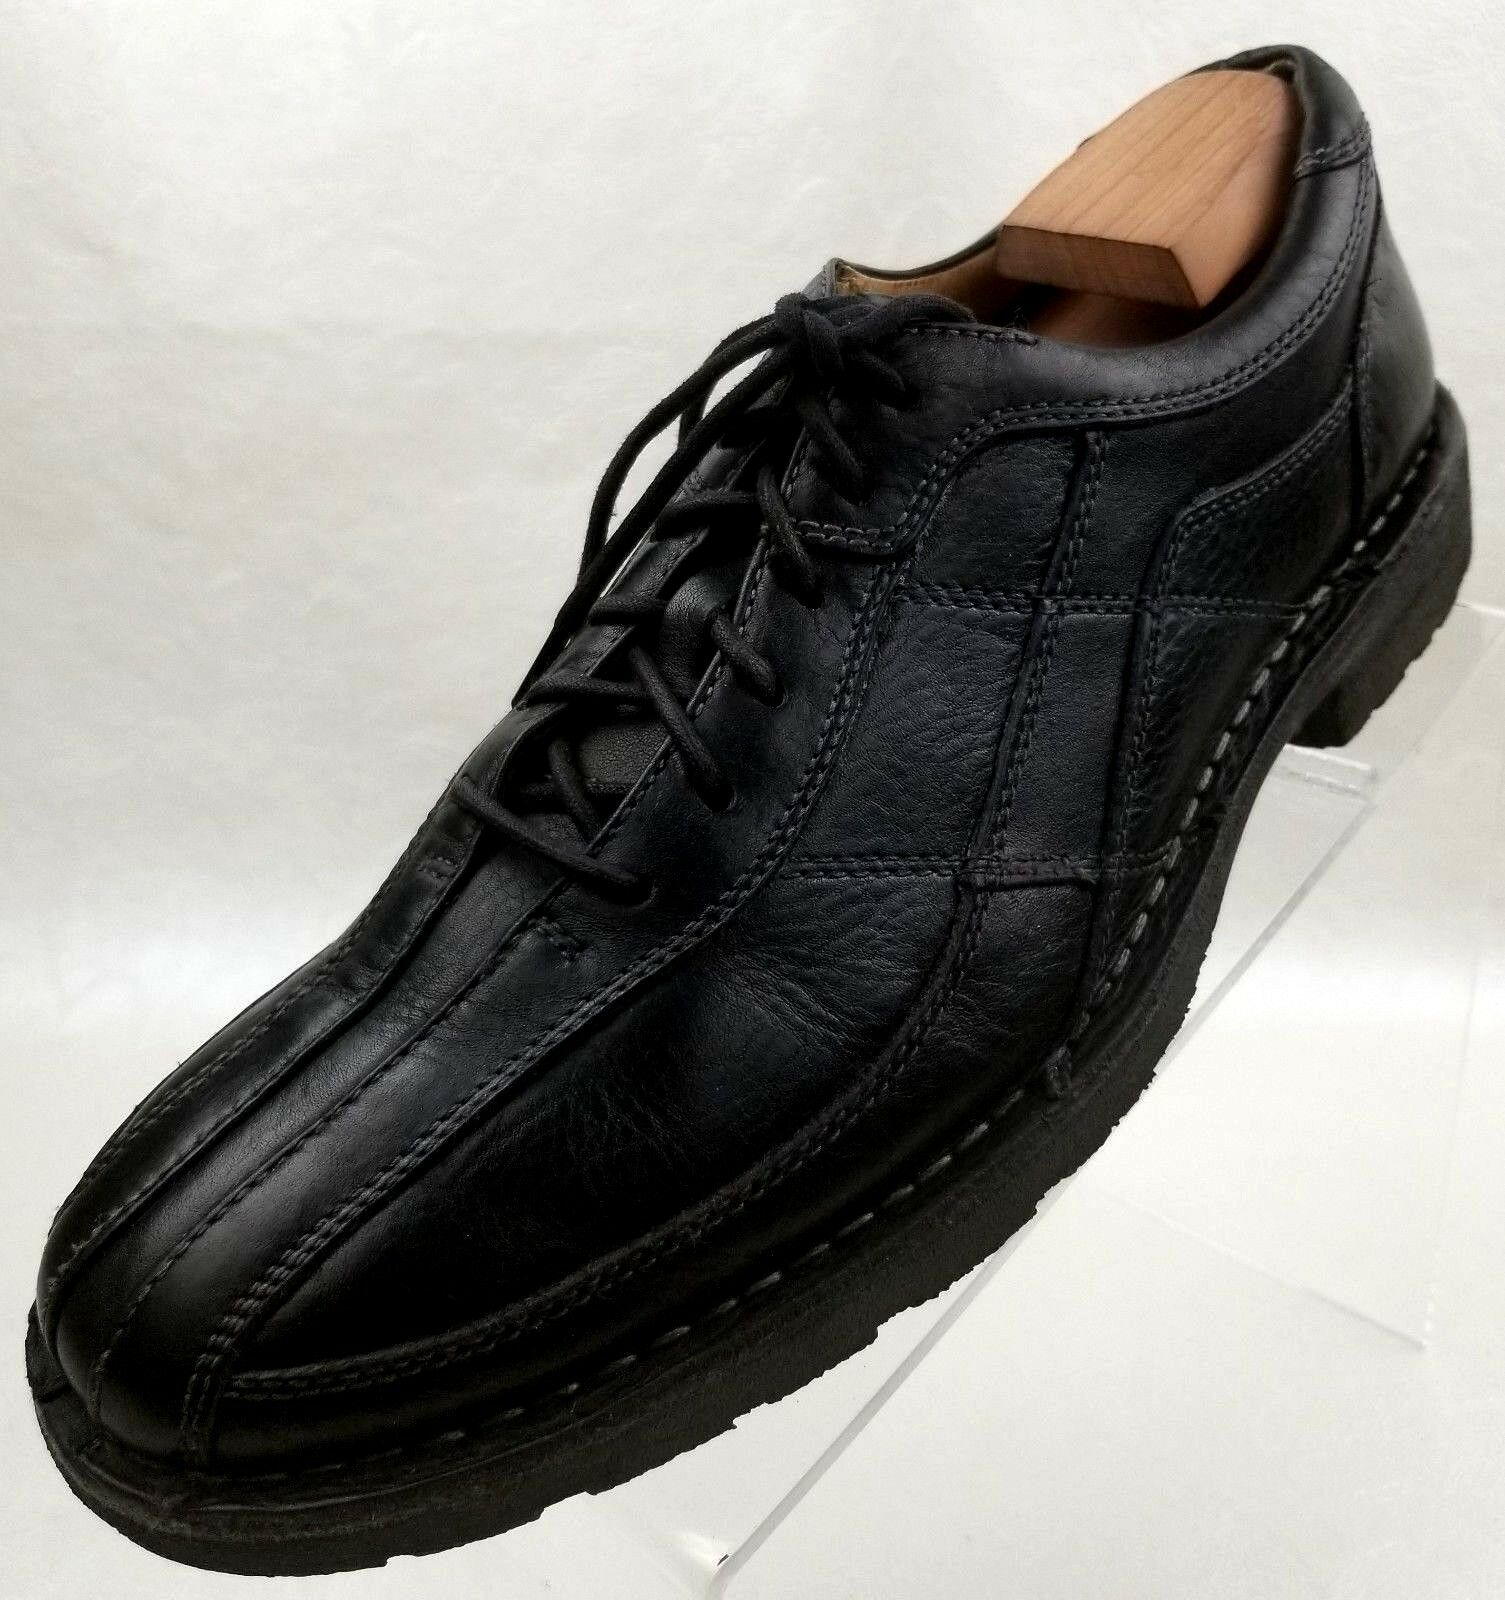 Ruhne Oxfords Bike Round Toe Men's Black Leather Lace Up shoes Size 9.5 MW